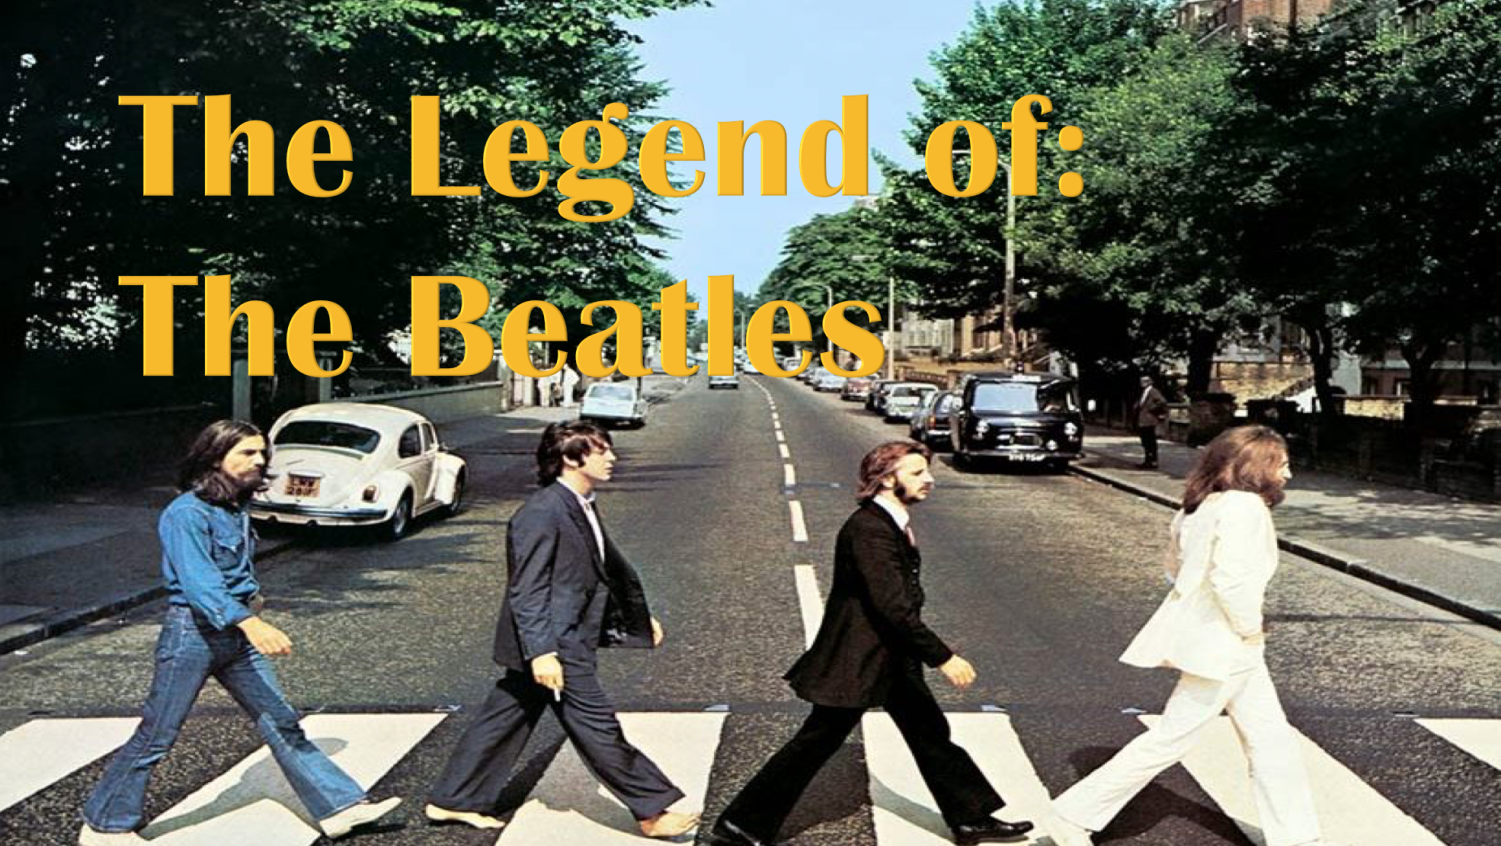 Listen to The Beatles' entire discography with the playlist below, and don't forget to check out each of their individual works with your preferred music streaming service.  If you like what you're reading make sure to check out other music reviews and other music related articles under the A&E section of Lancer Spirit Online.